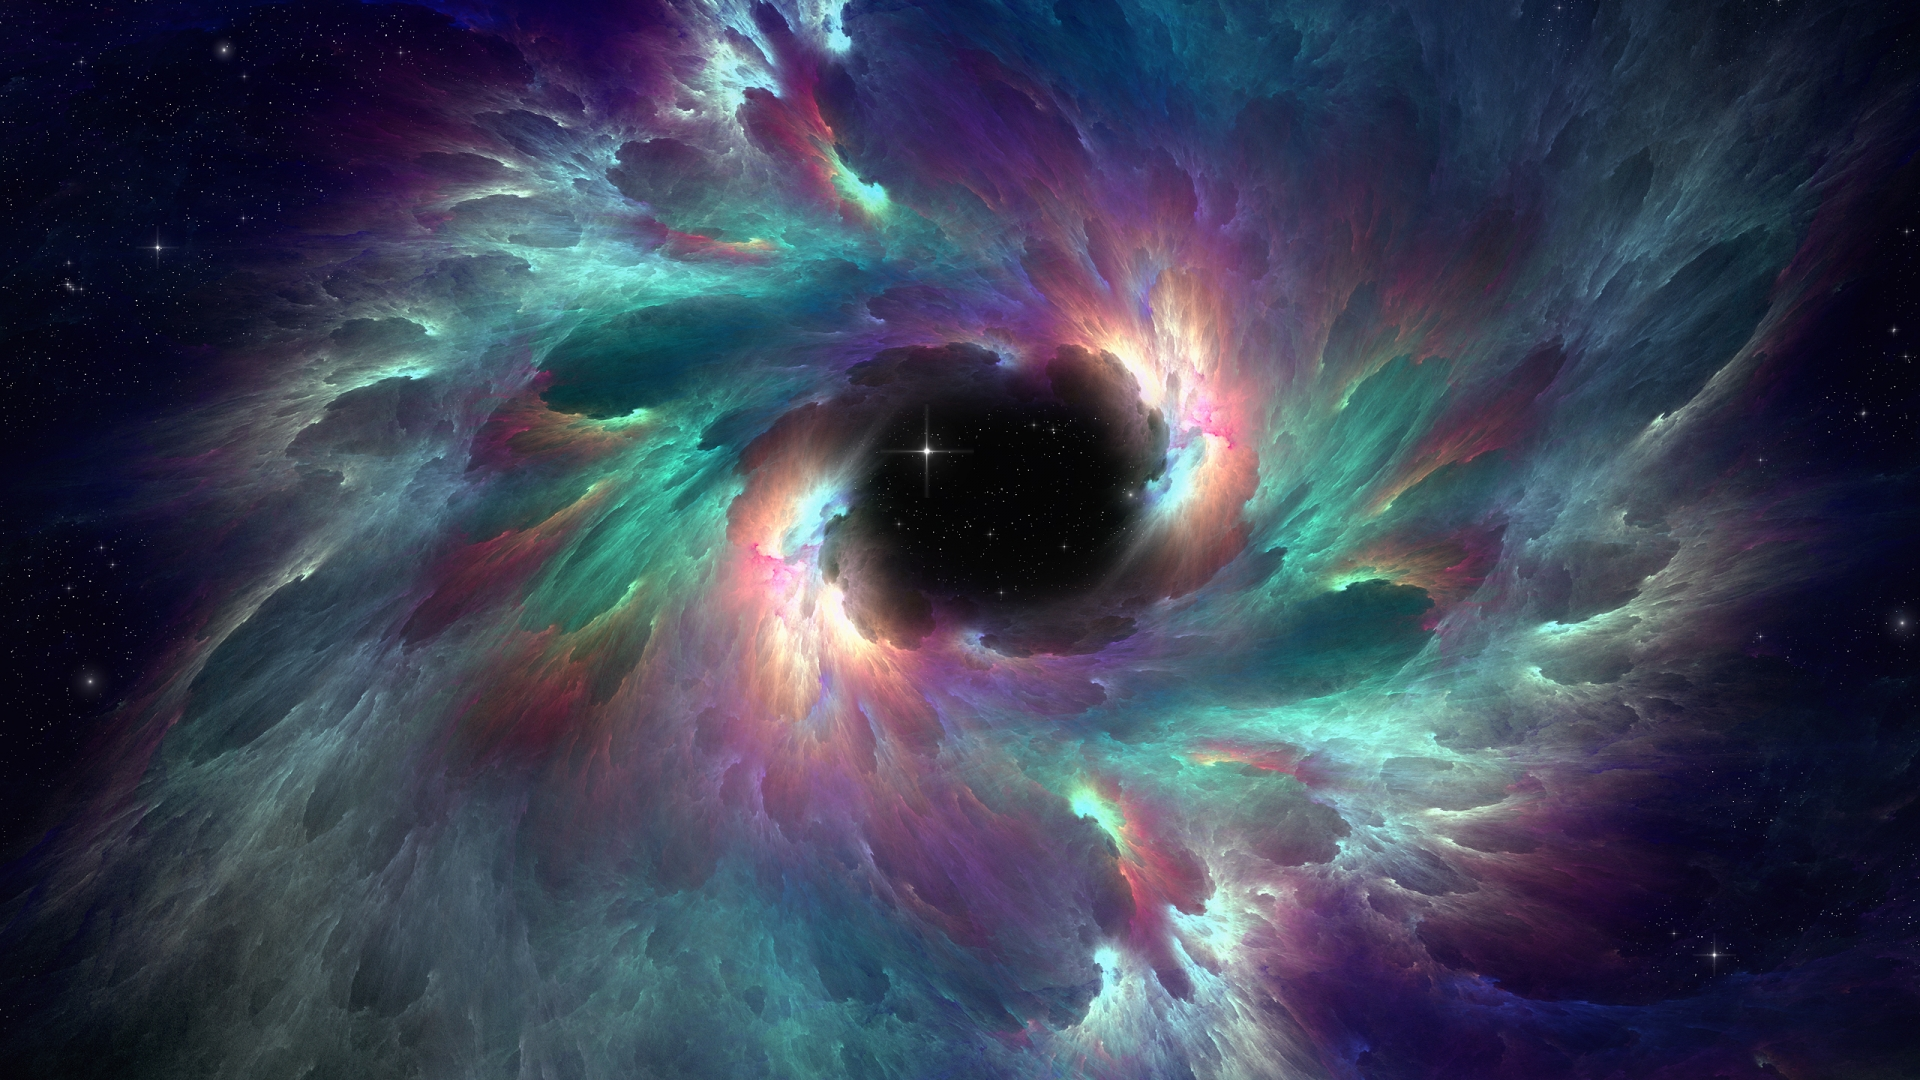 nebula hd wallpaper optical illusions - photo #27